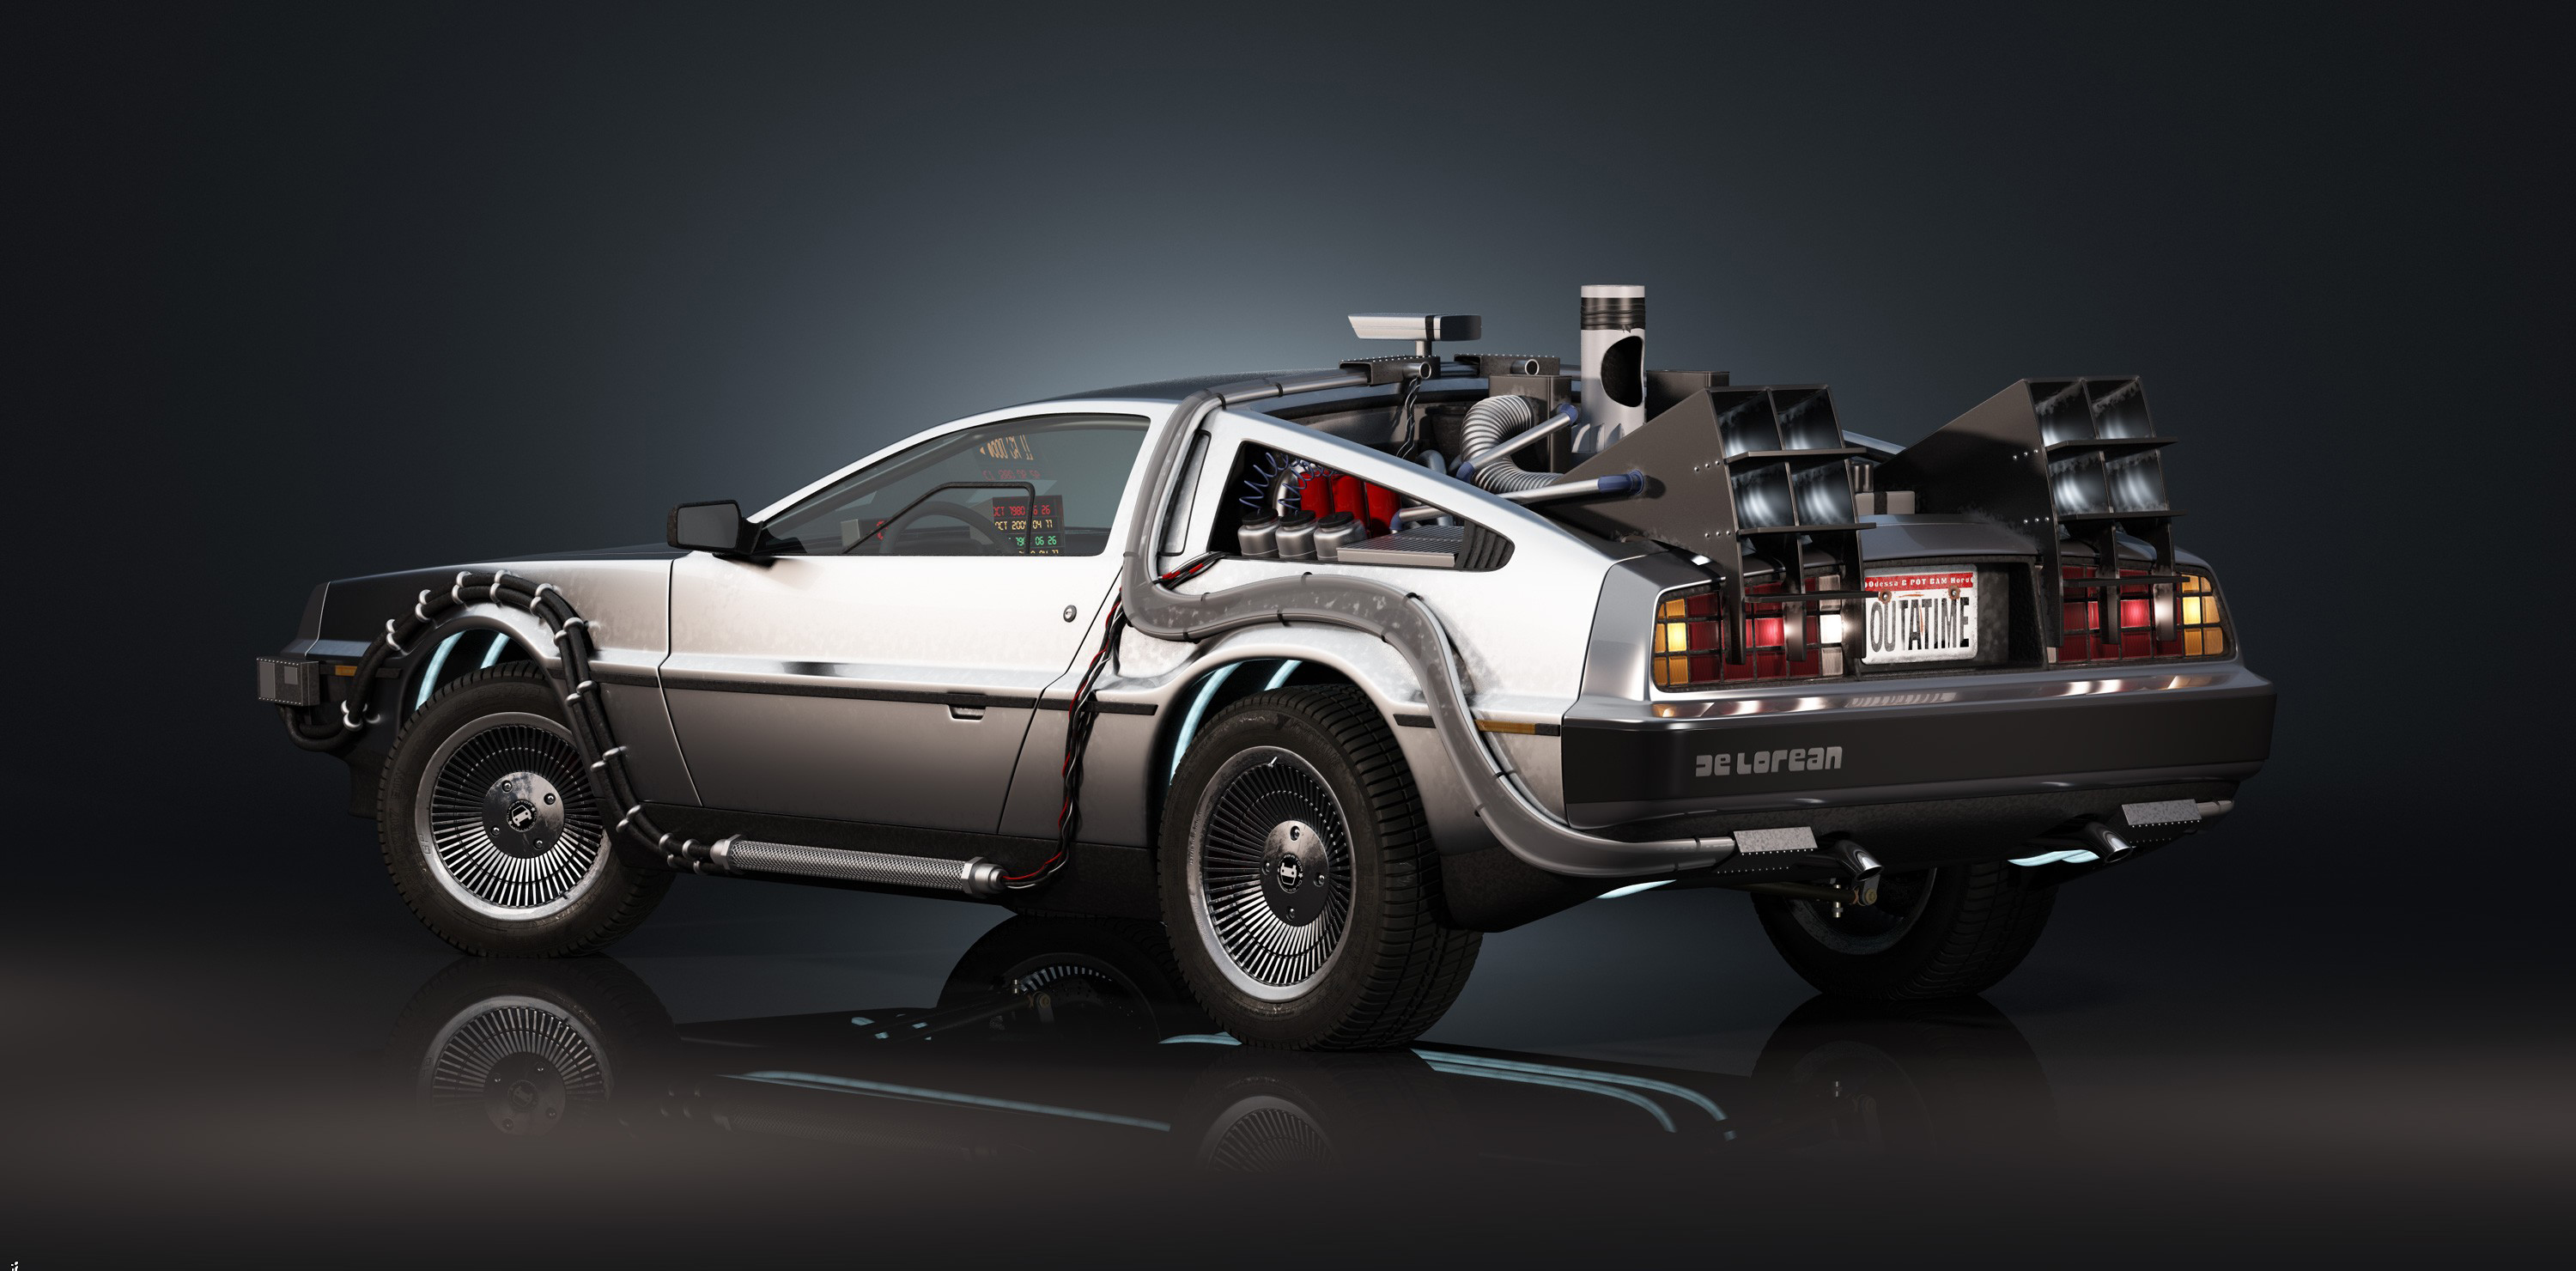 68 Back To The Future HD Wallpapers Background Images 3000x1480